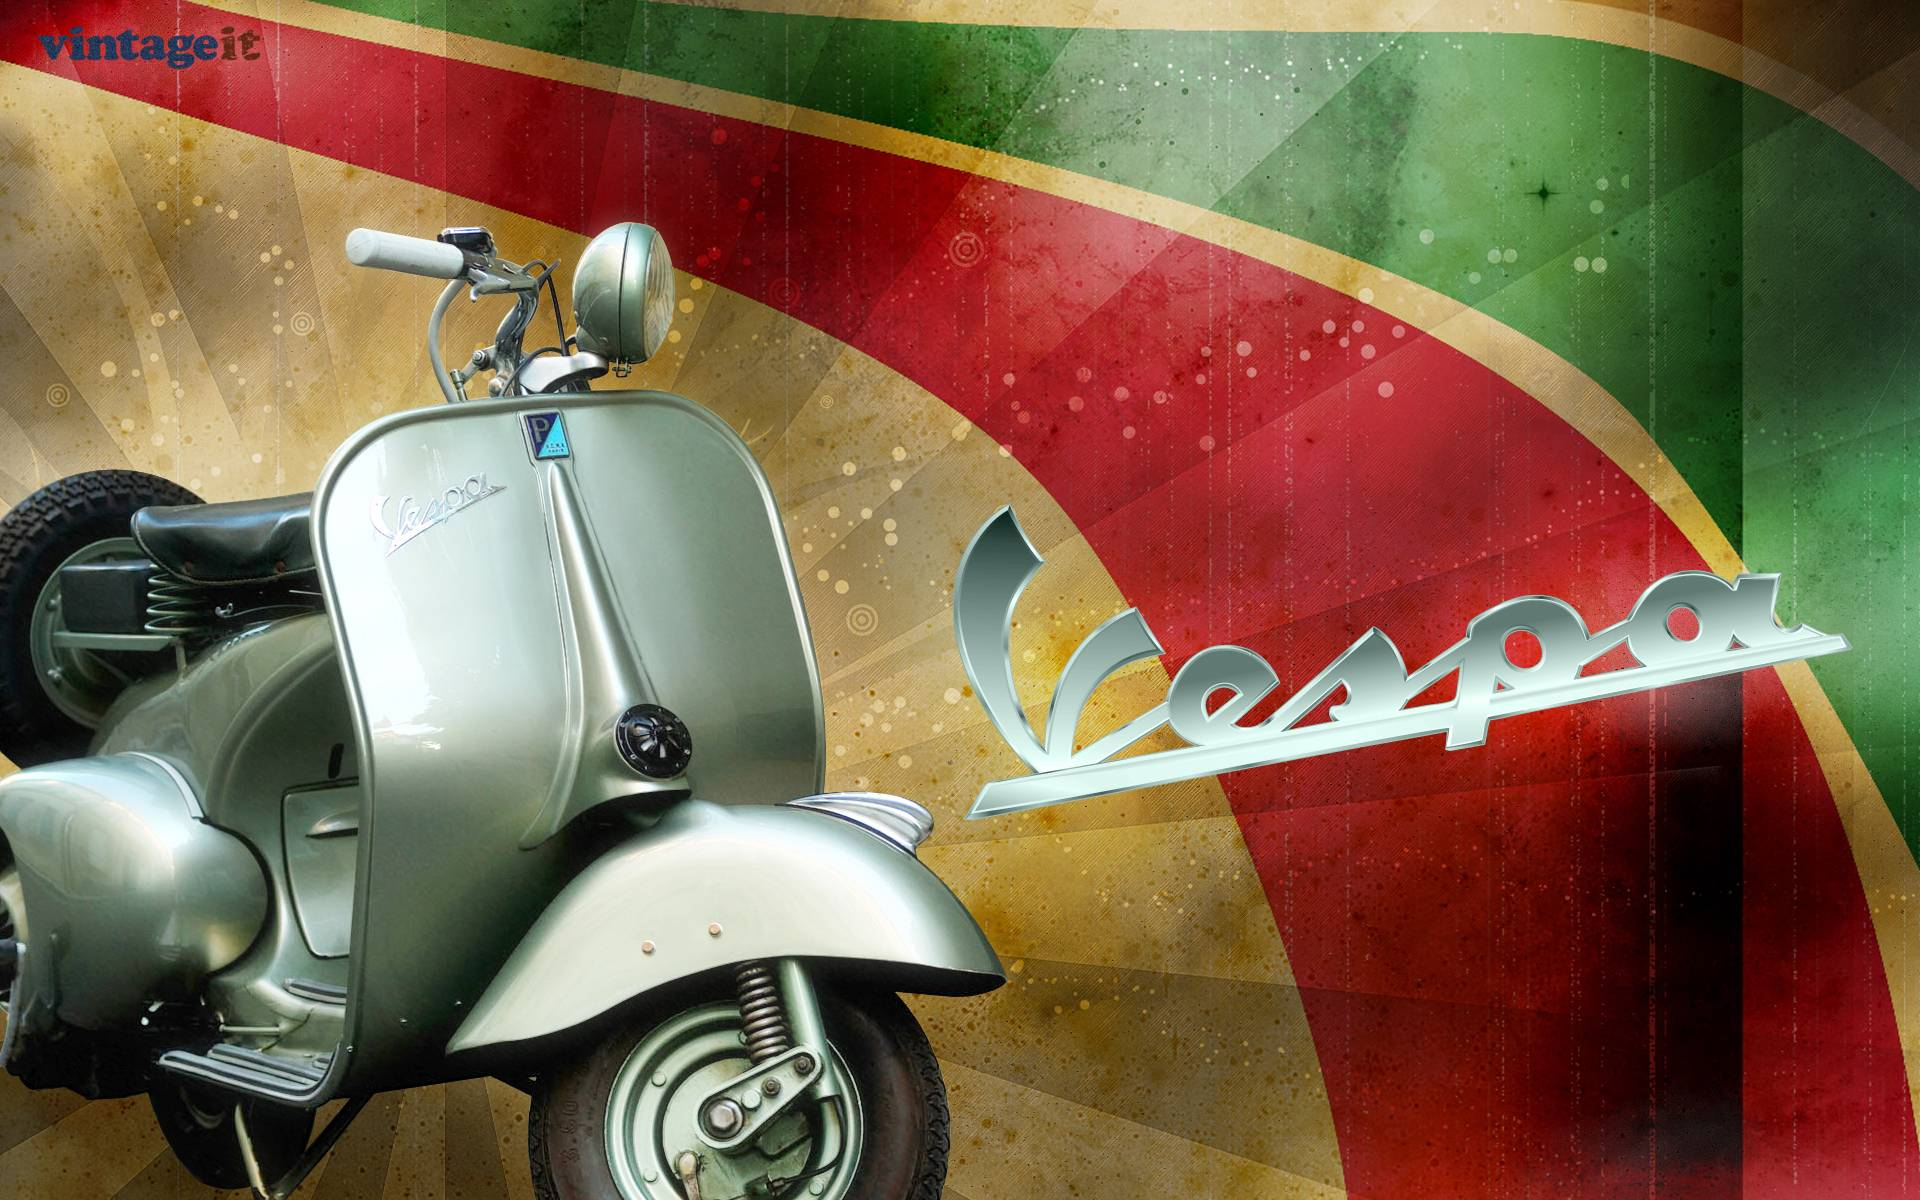 Vespa Wallpapers - Full HD wallpaper search